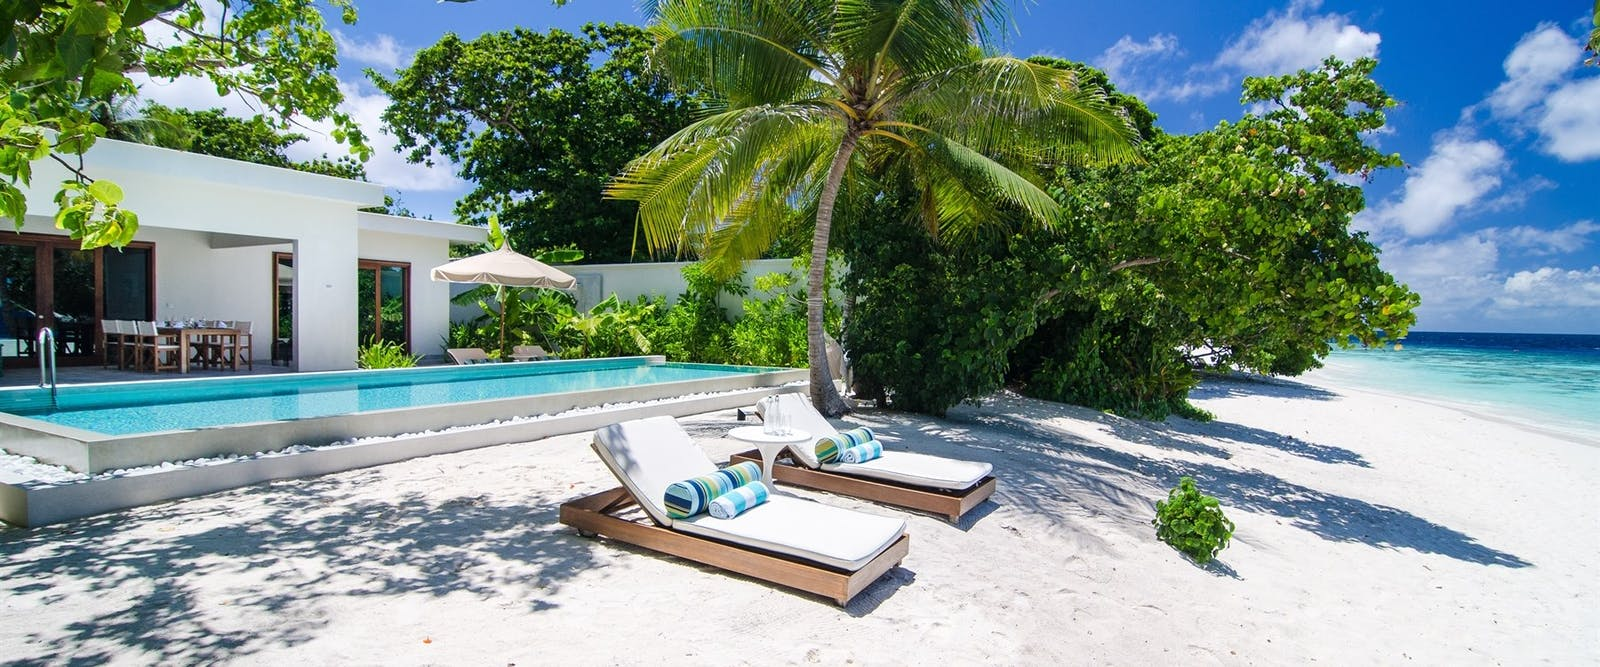 Beach House at Amilla Fushi, Maldives, Indian Ocean